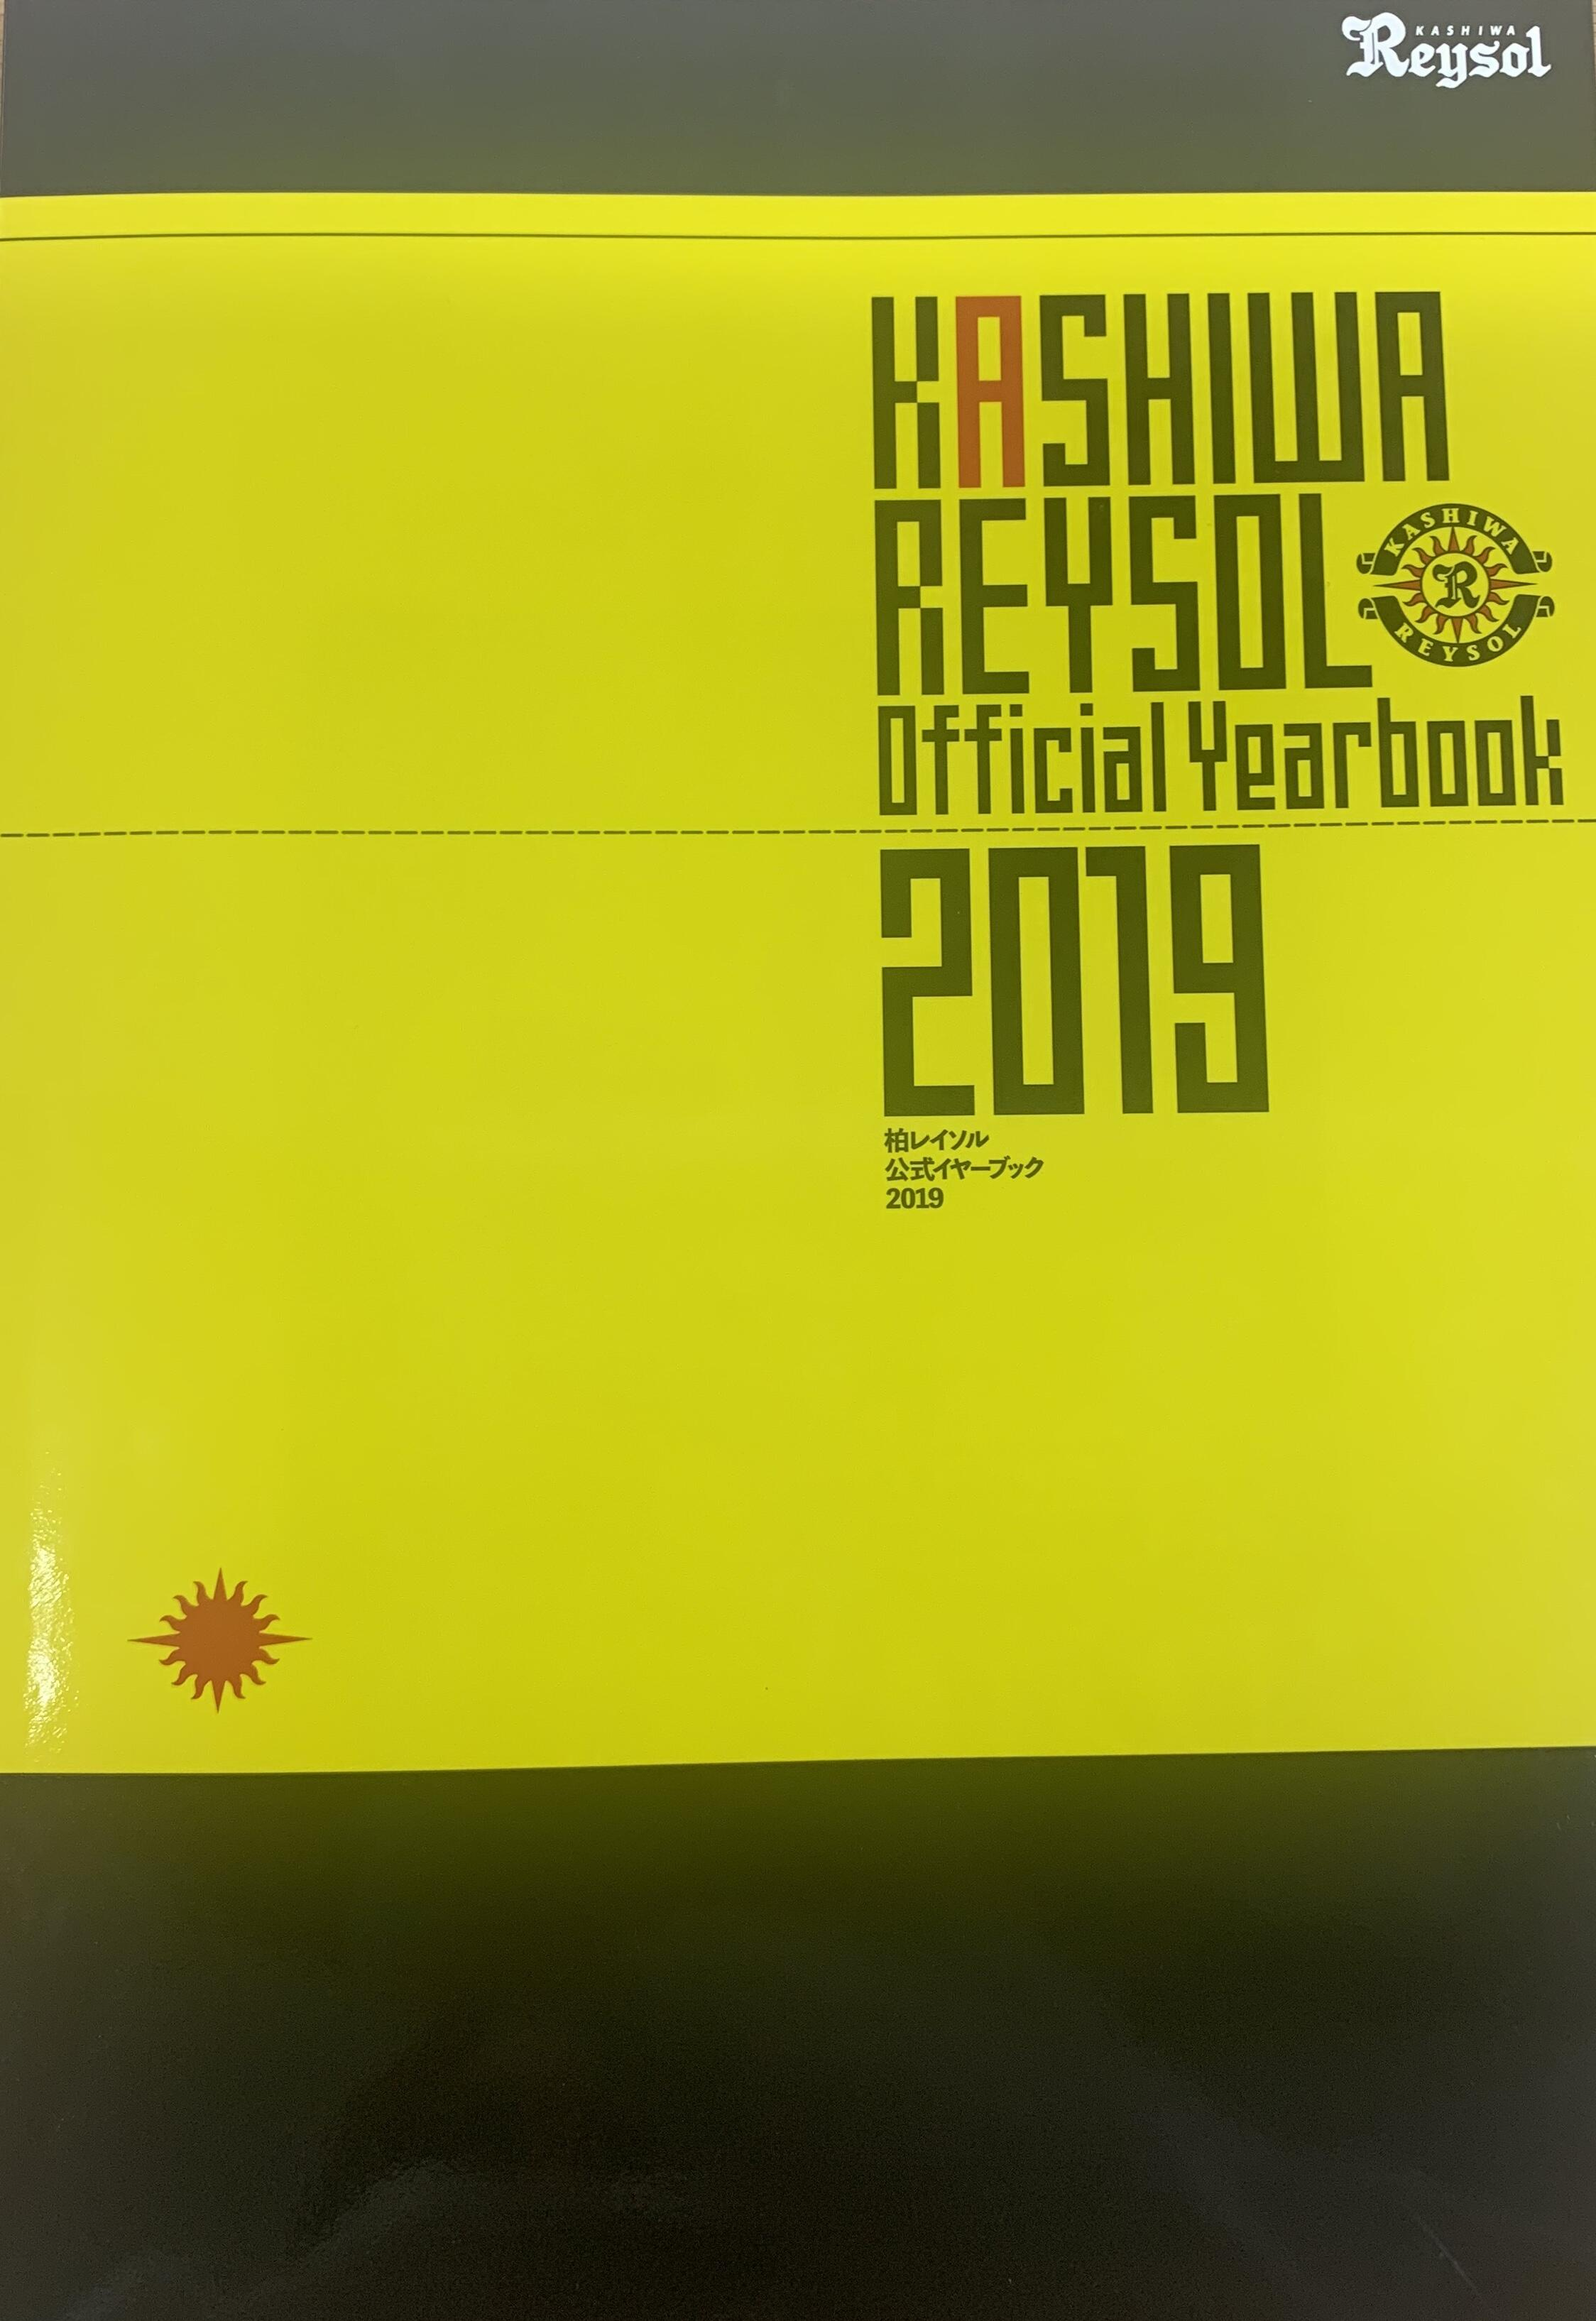 2019_yearbook.jpg